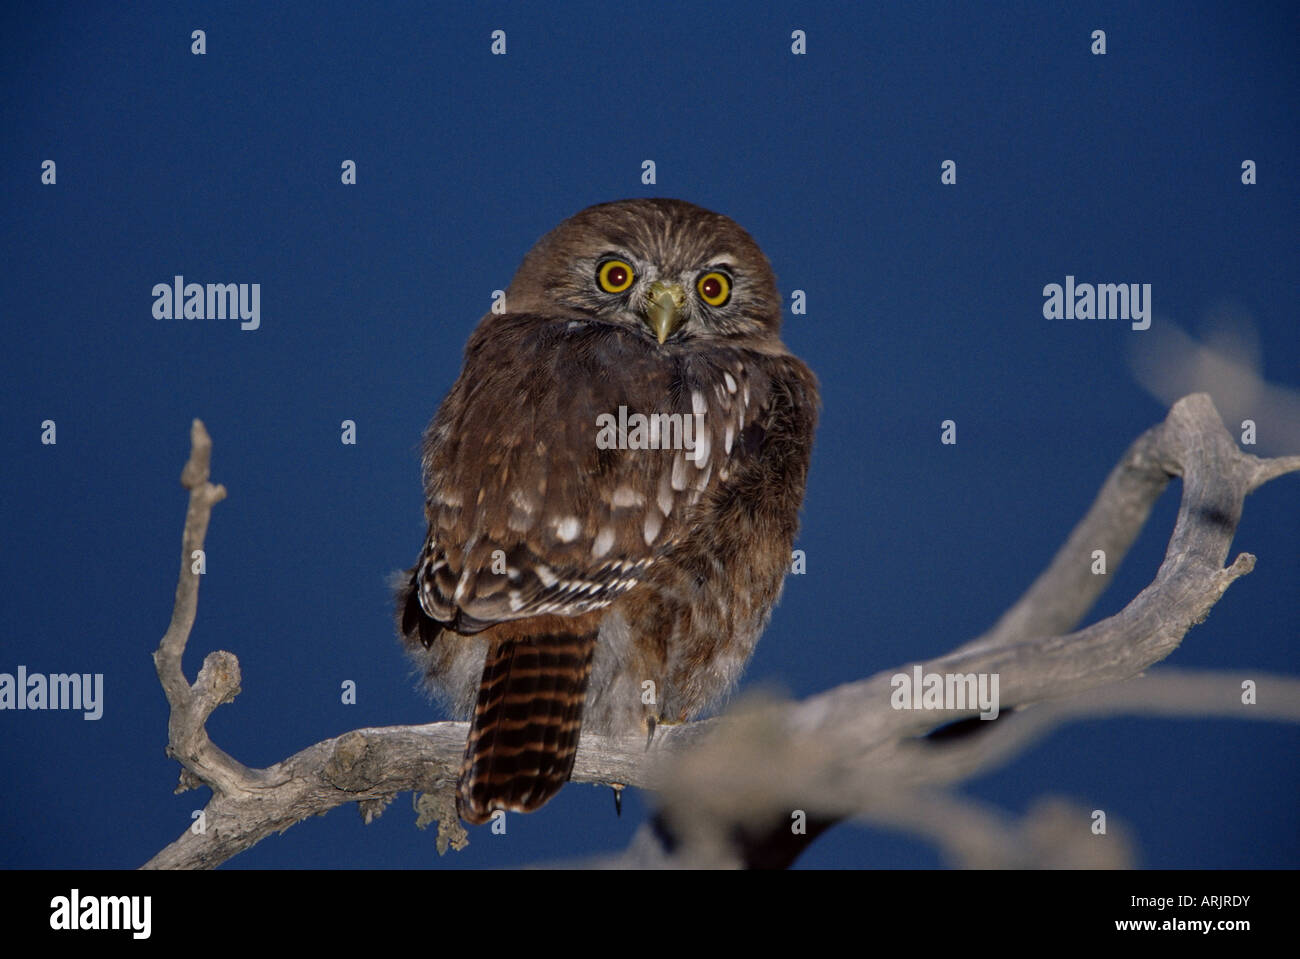 An austral pygmy owl (Glaucidium nanum) sitting on a tree, Torres del Paine National Park, Patagonia, Chile, South - Stock Image